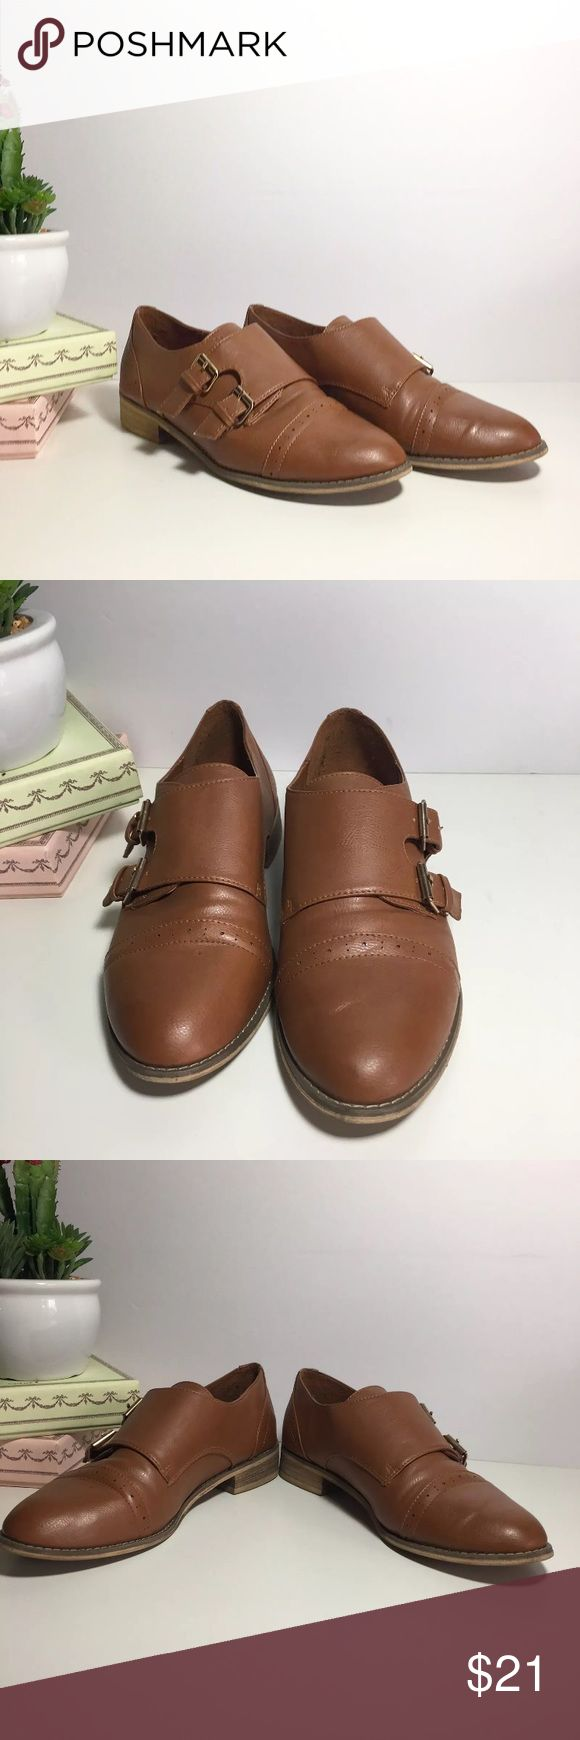 Creeper Teddy Loafer Boy Shoes Brown Size 9 Name Brand: Forever 21  Condition: Pre Owned, Excellent condition light wear, no holes, stains or flaws to note  Size: 9  Color: Brown  Style: Teddy Boy Creeper Forever 21 Shoes Flats & Loafers